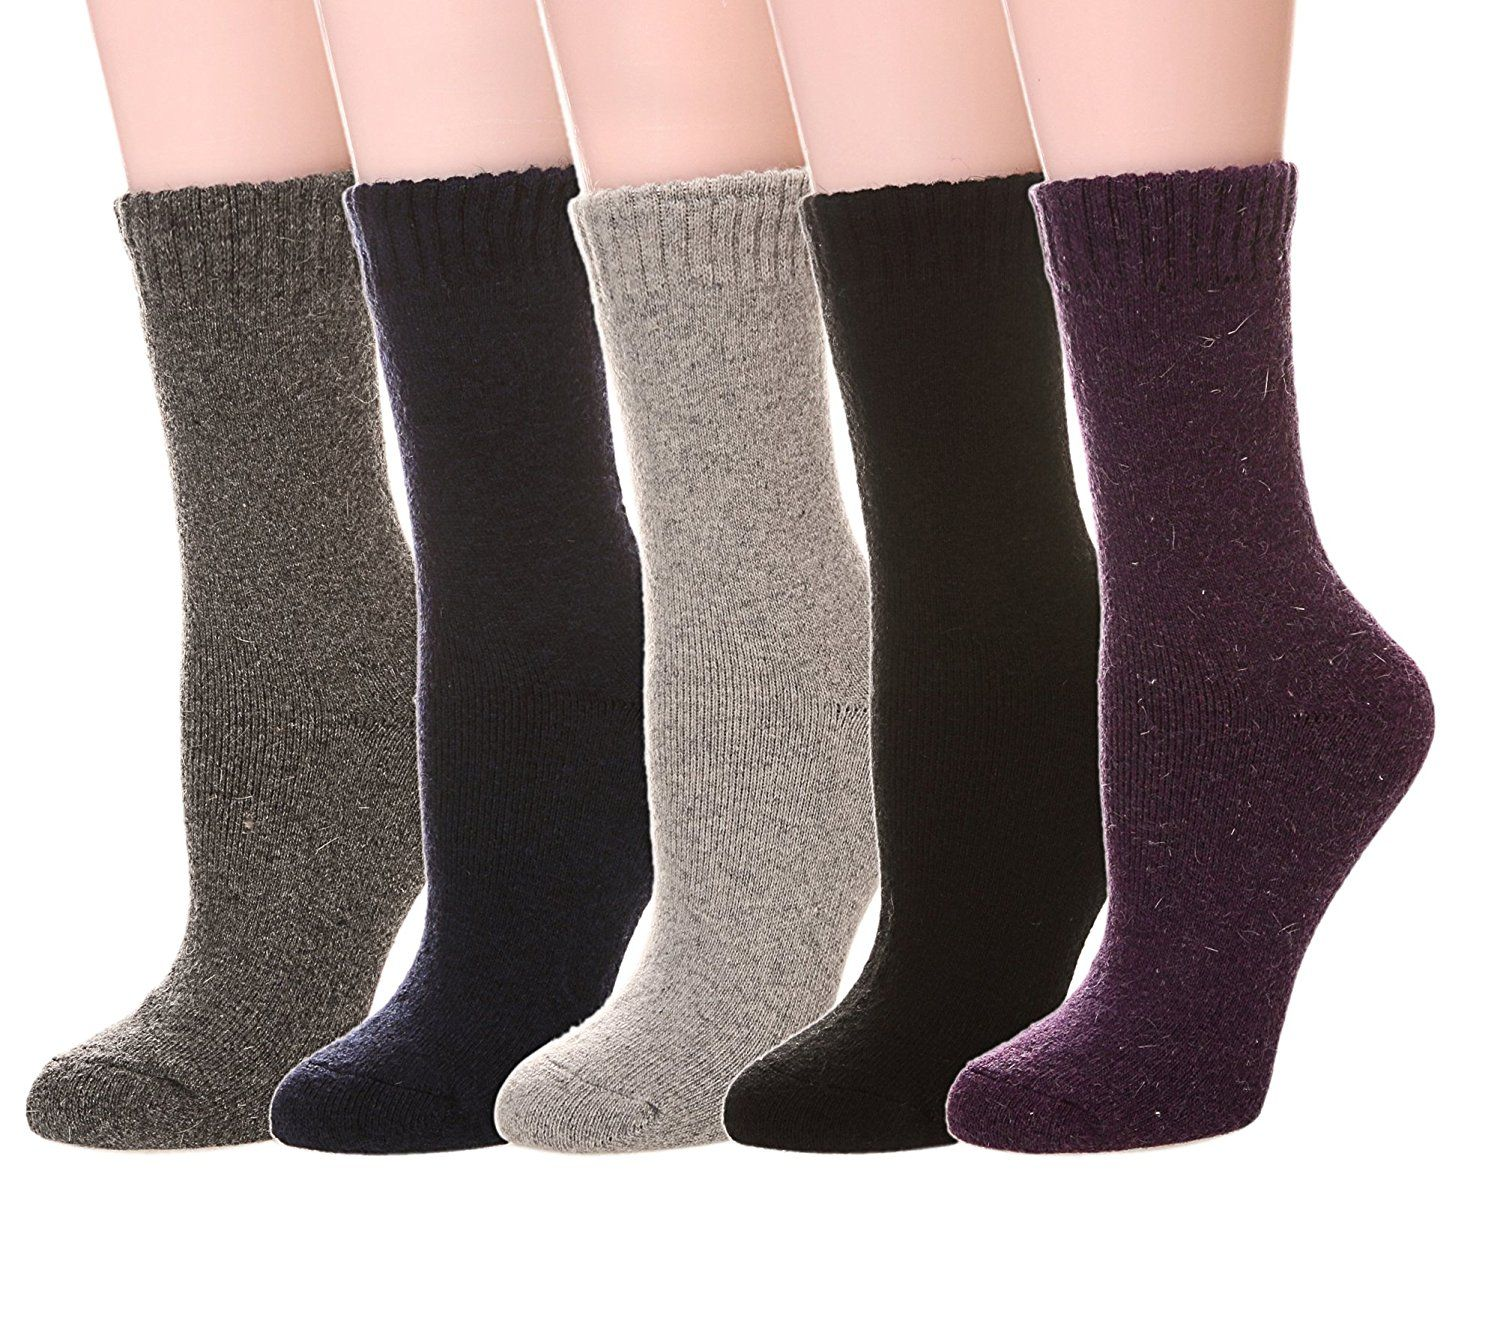 Color City Women's Super Thick Soft Knit Wool Warm Winter Crew Socks